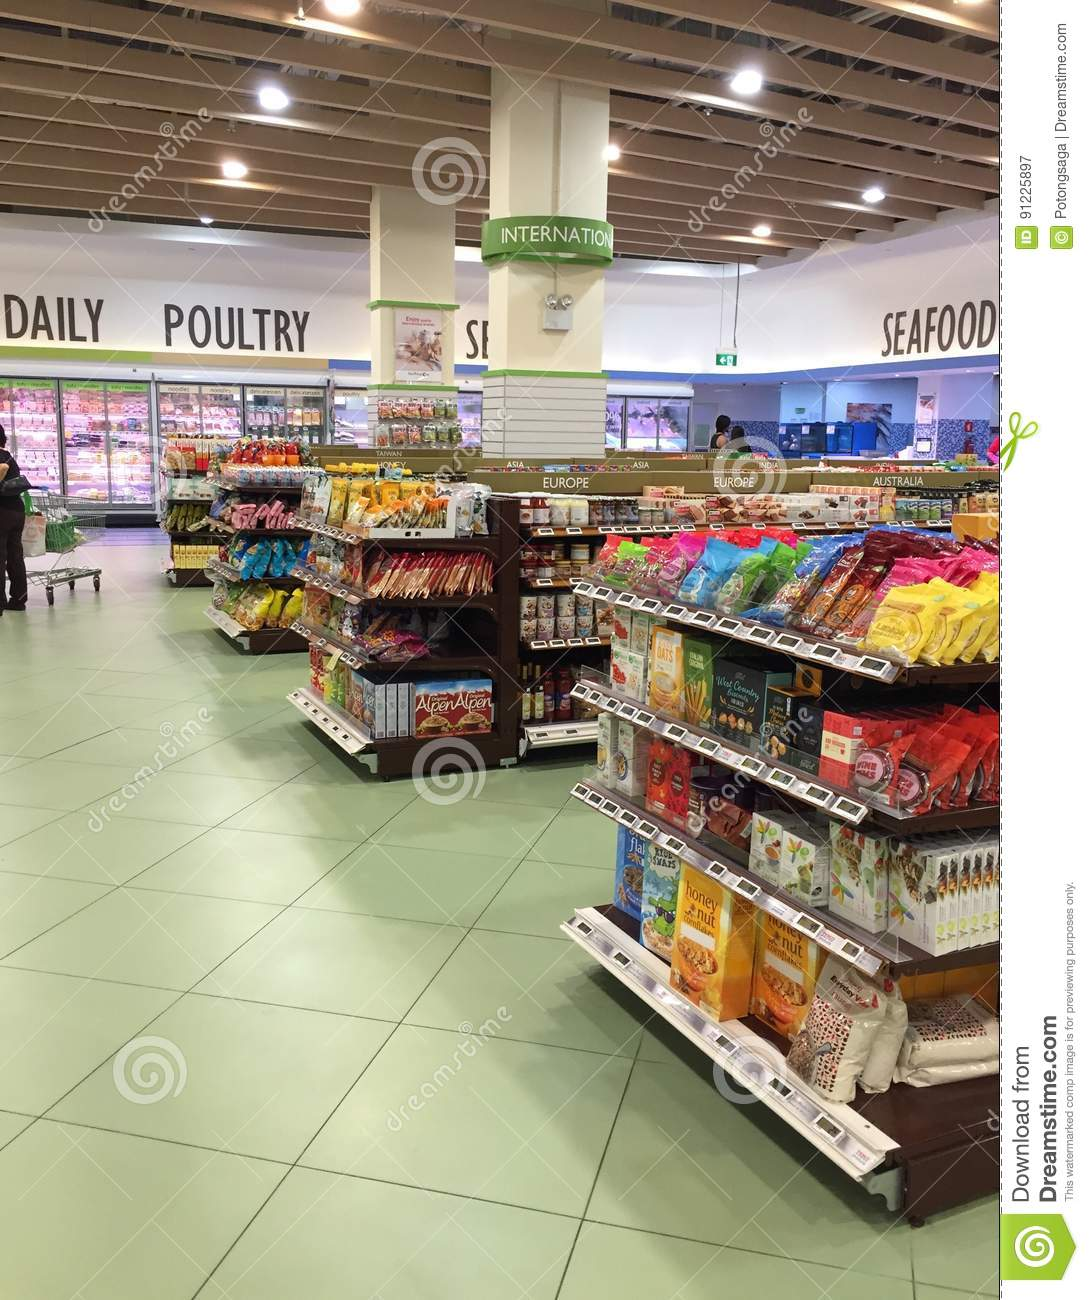 Grocery Shopping Food Display Shelves At Supermarket